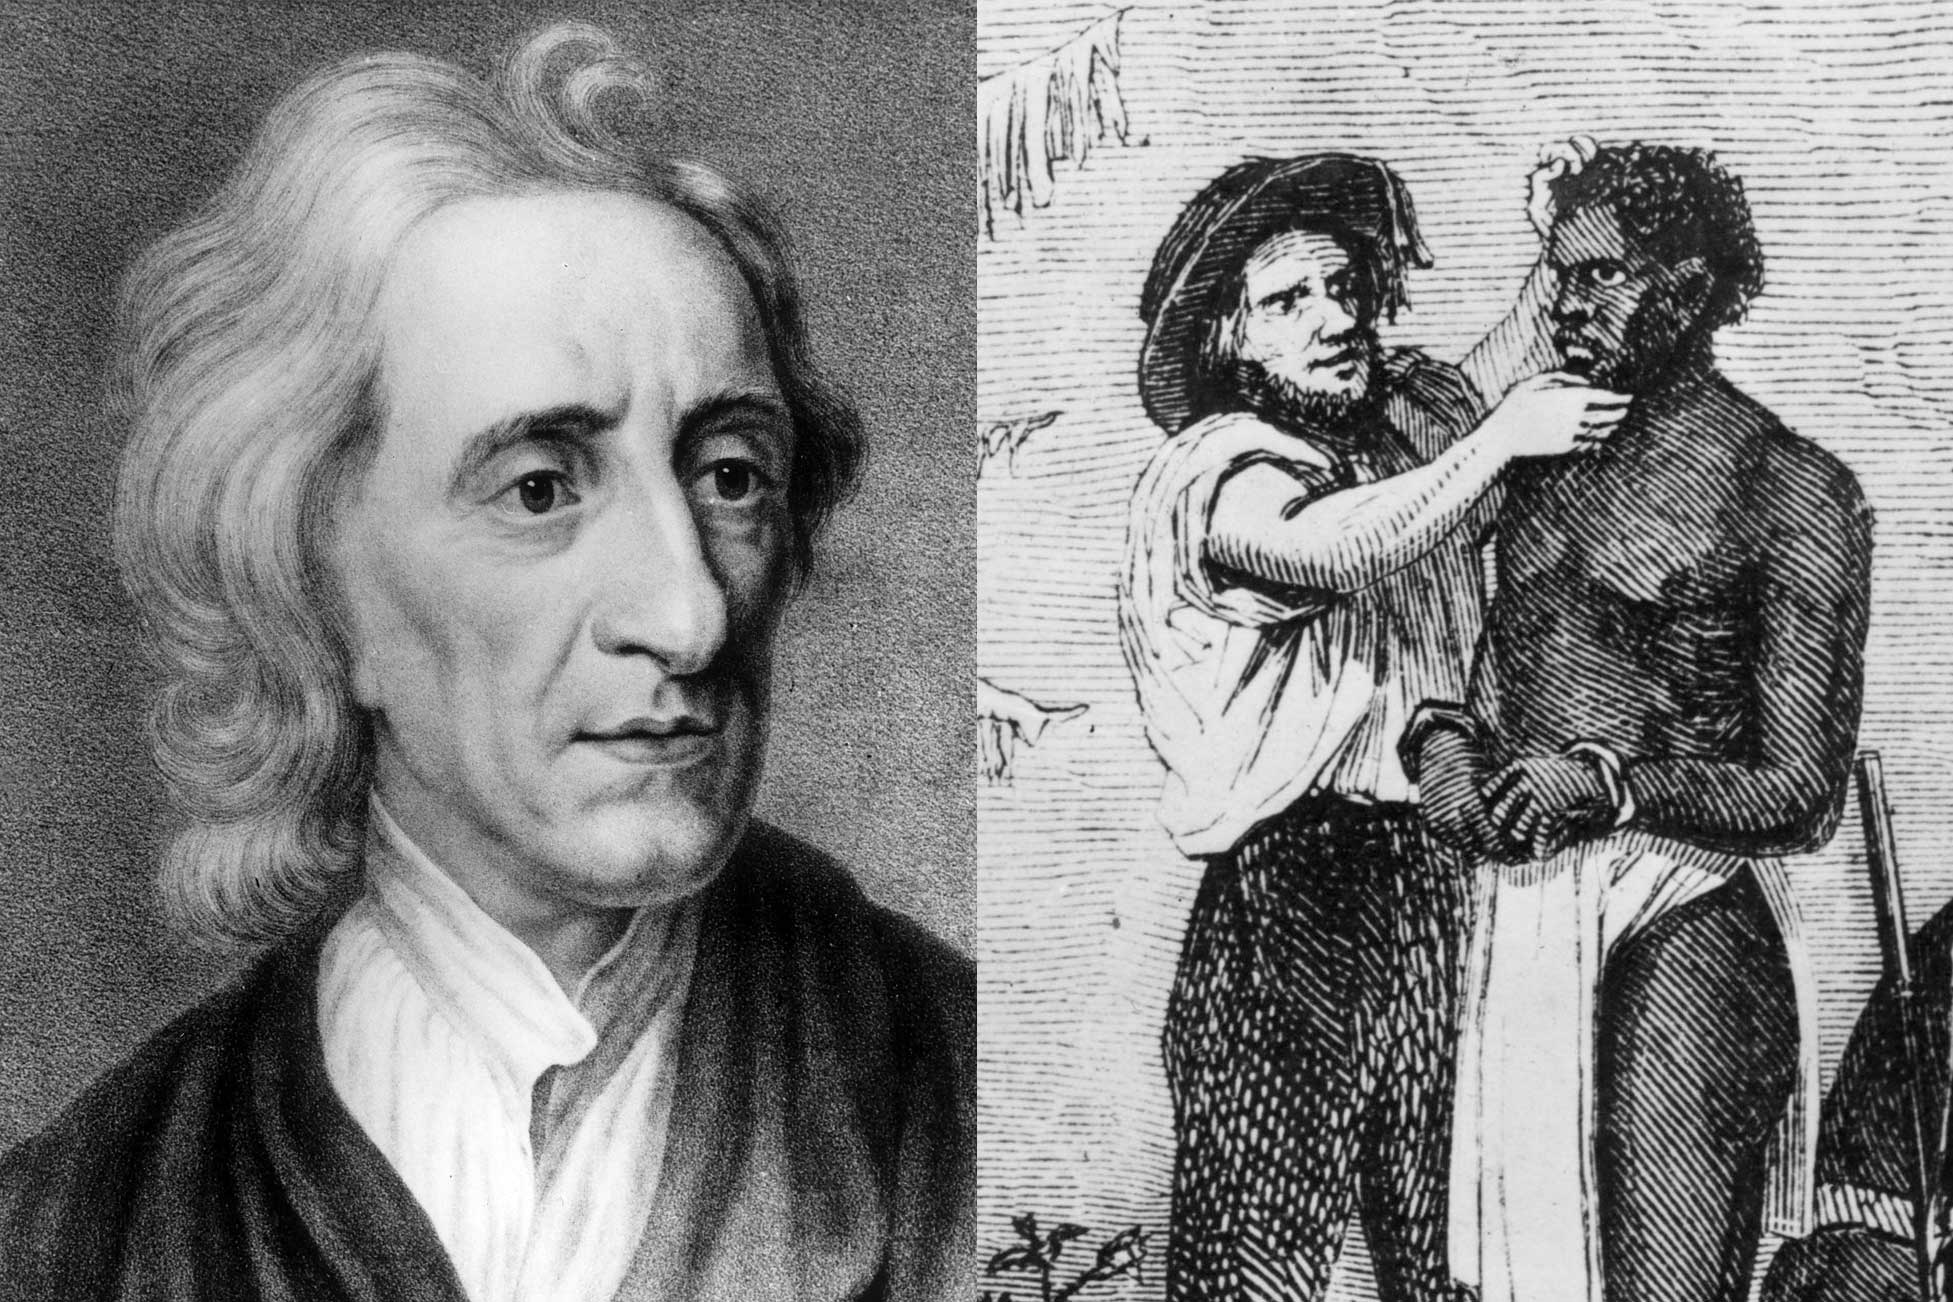 John Locke, and a wood graving of white trader inspecting an African slave during a sale, circa 1850.